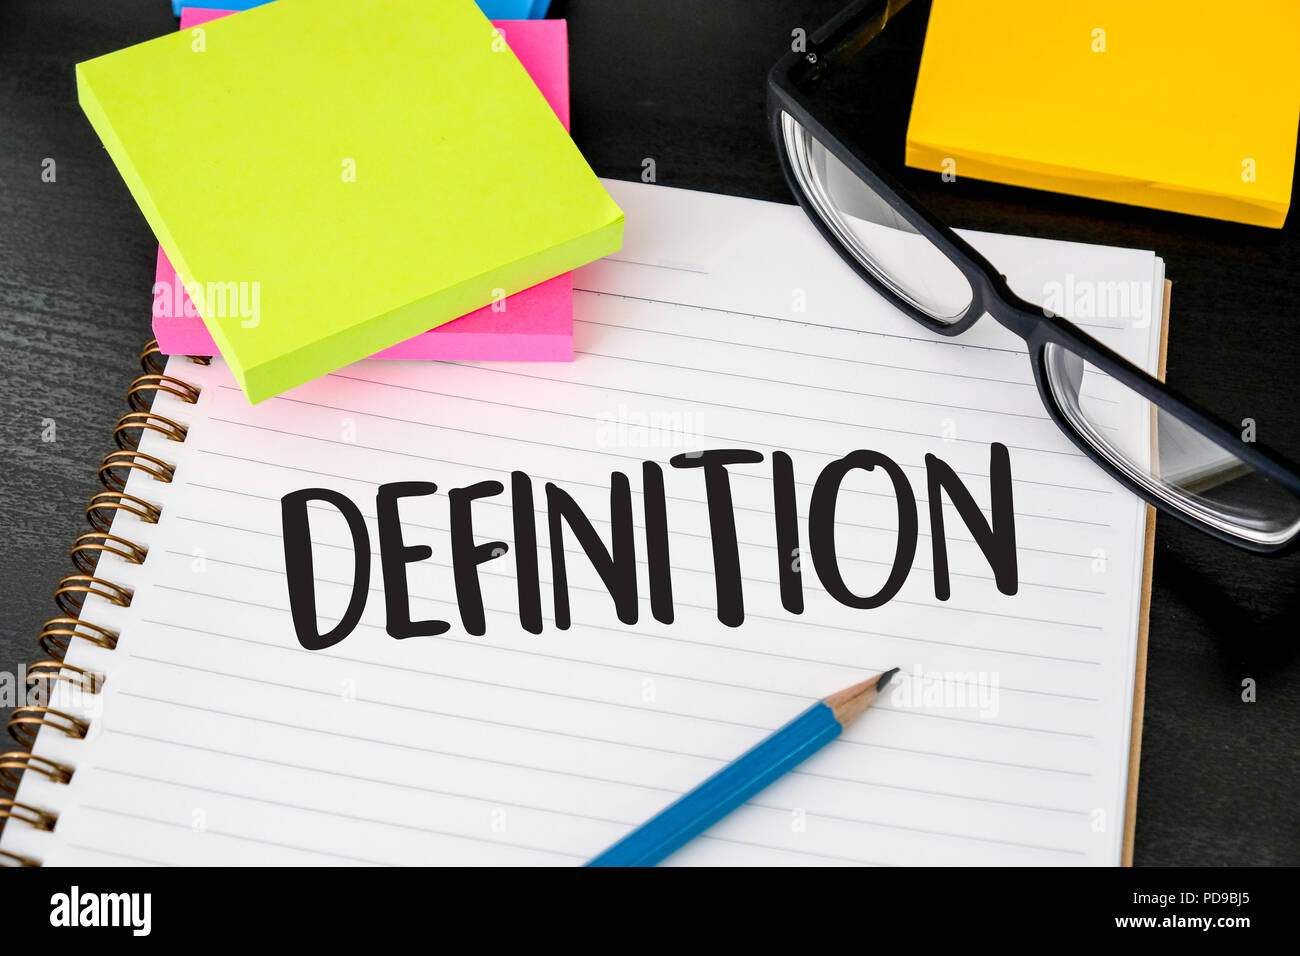 definition word business concep stock photo 214721645 alamy